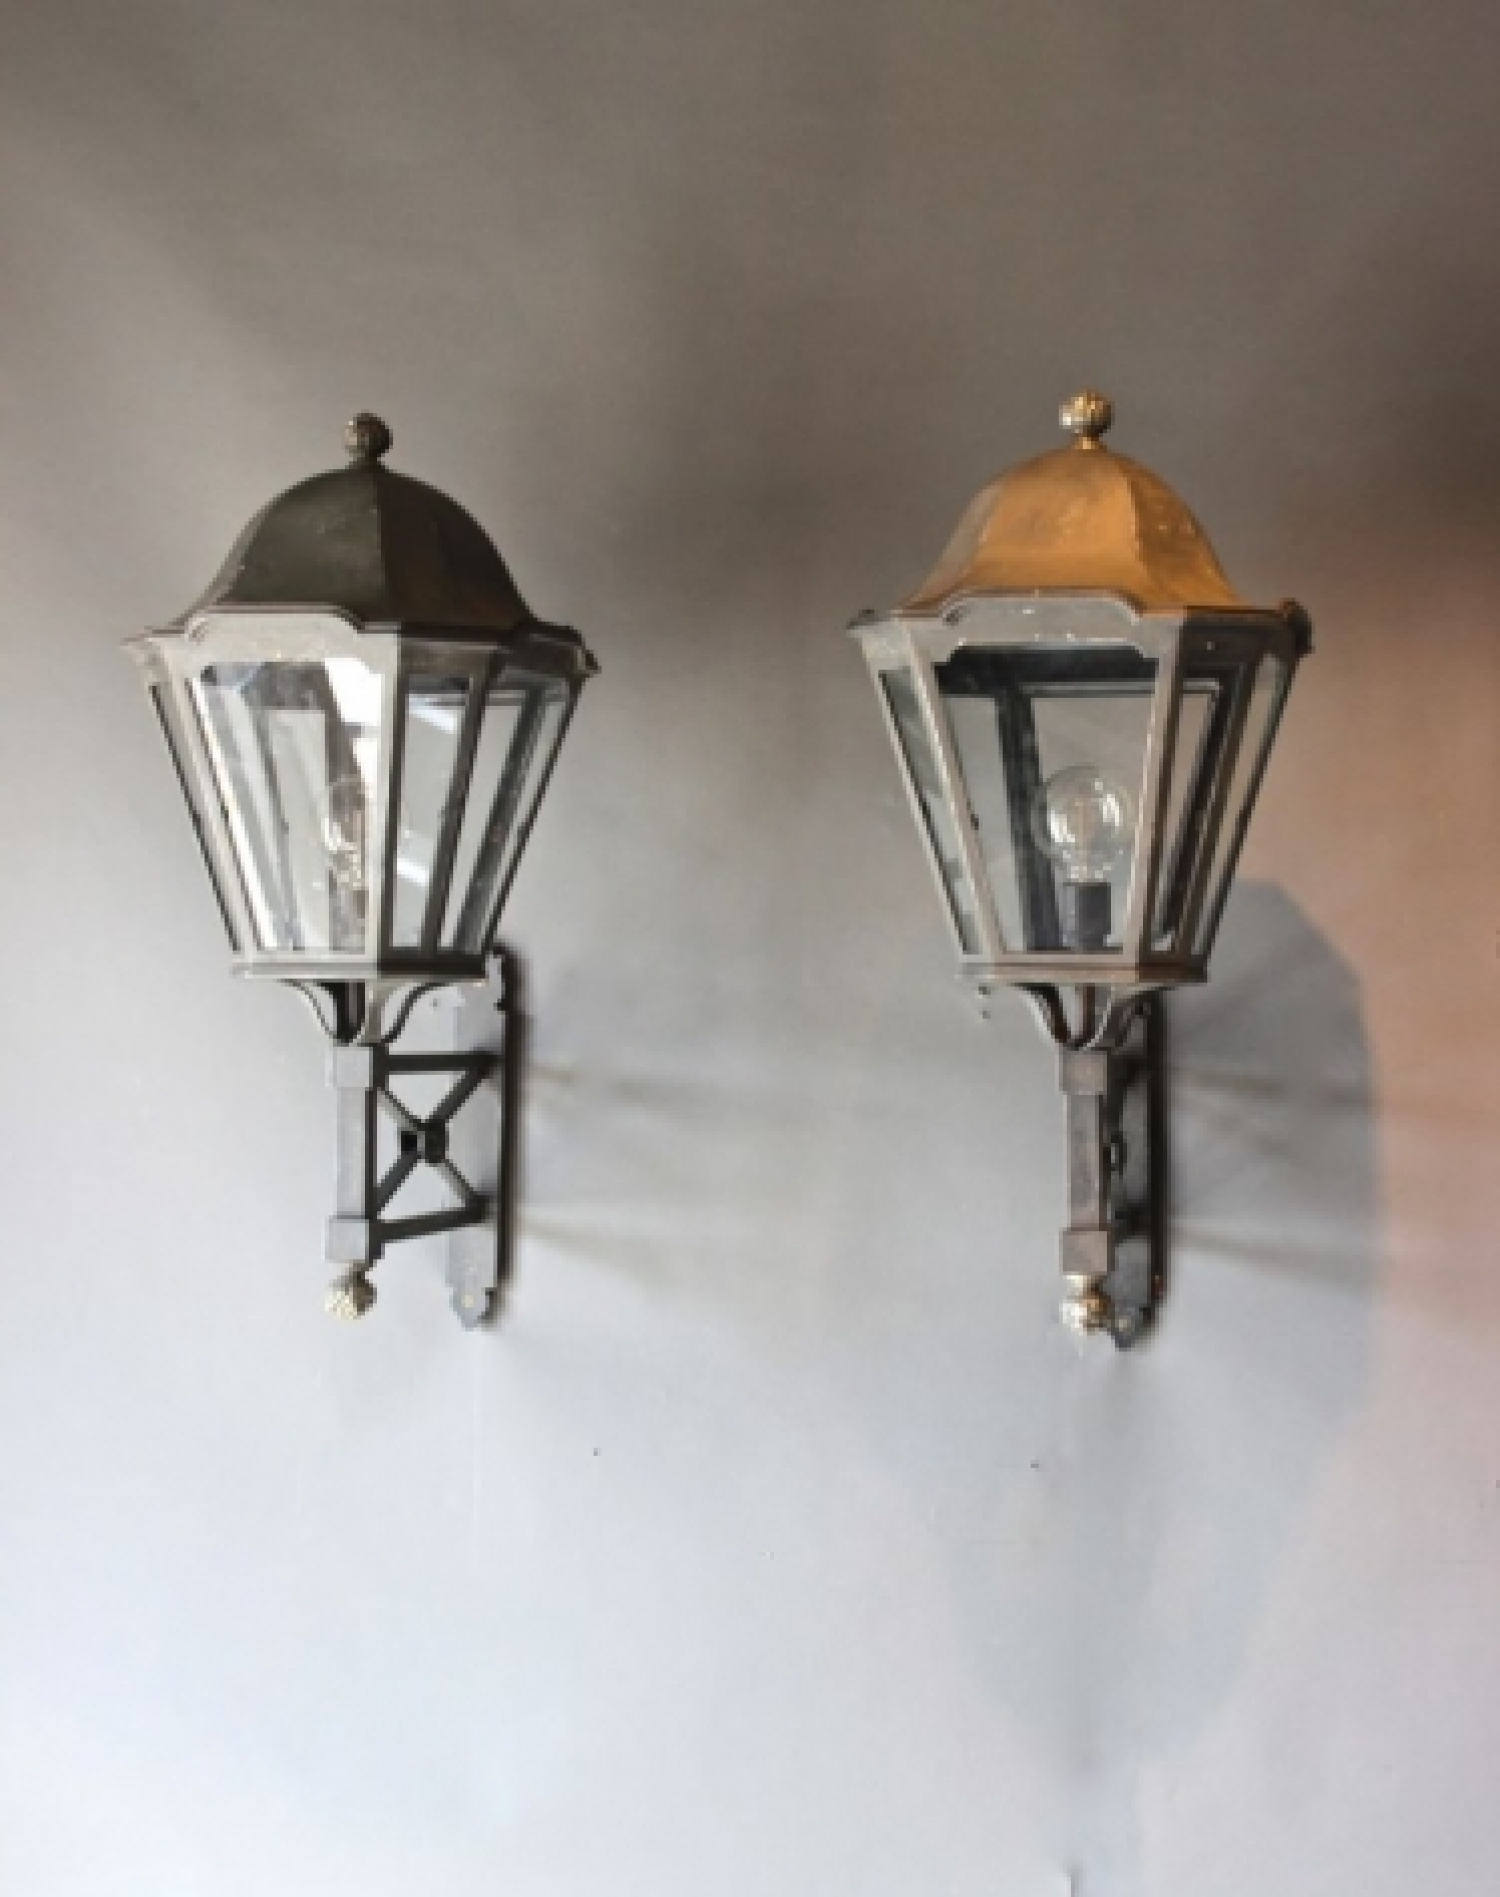 Antique Outside Lighting – Norfolk Decorative Antiques With Regard To Newest Antique Outdoor Lanterns (View 10 of 20)